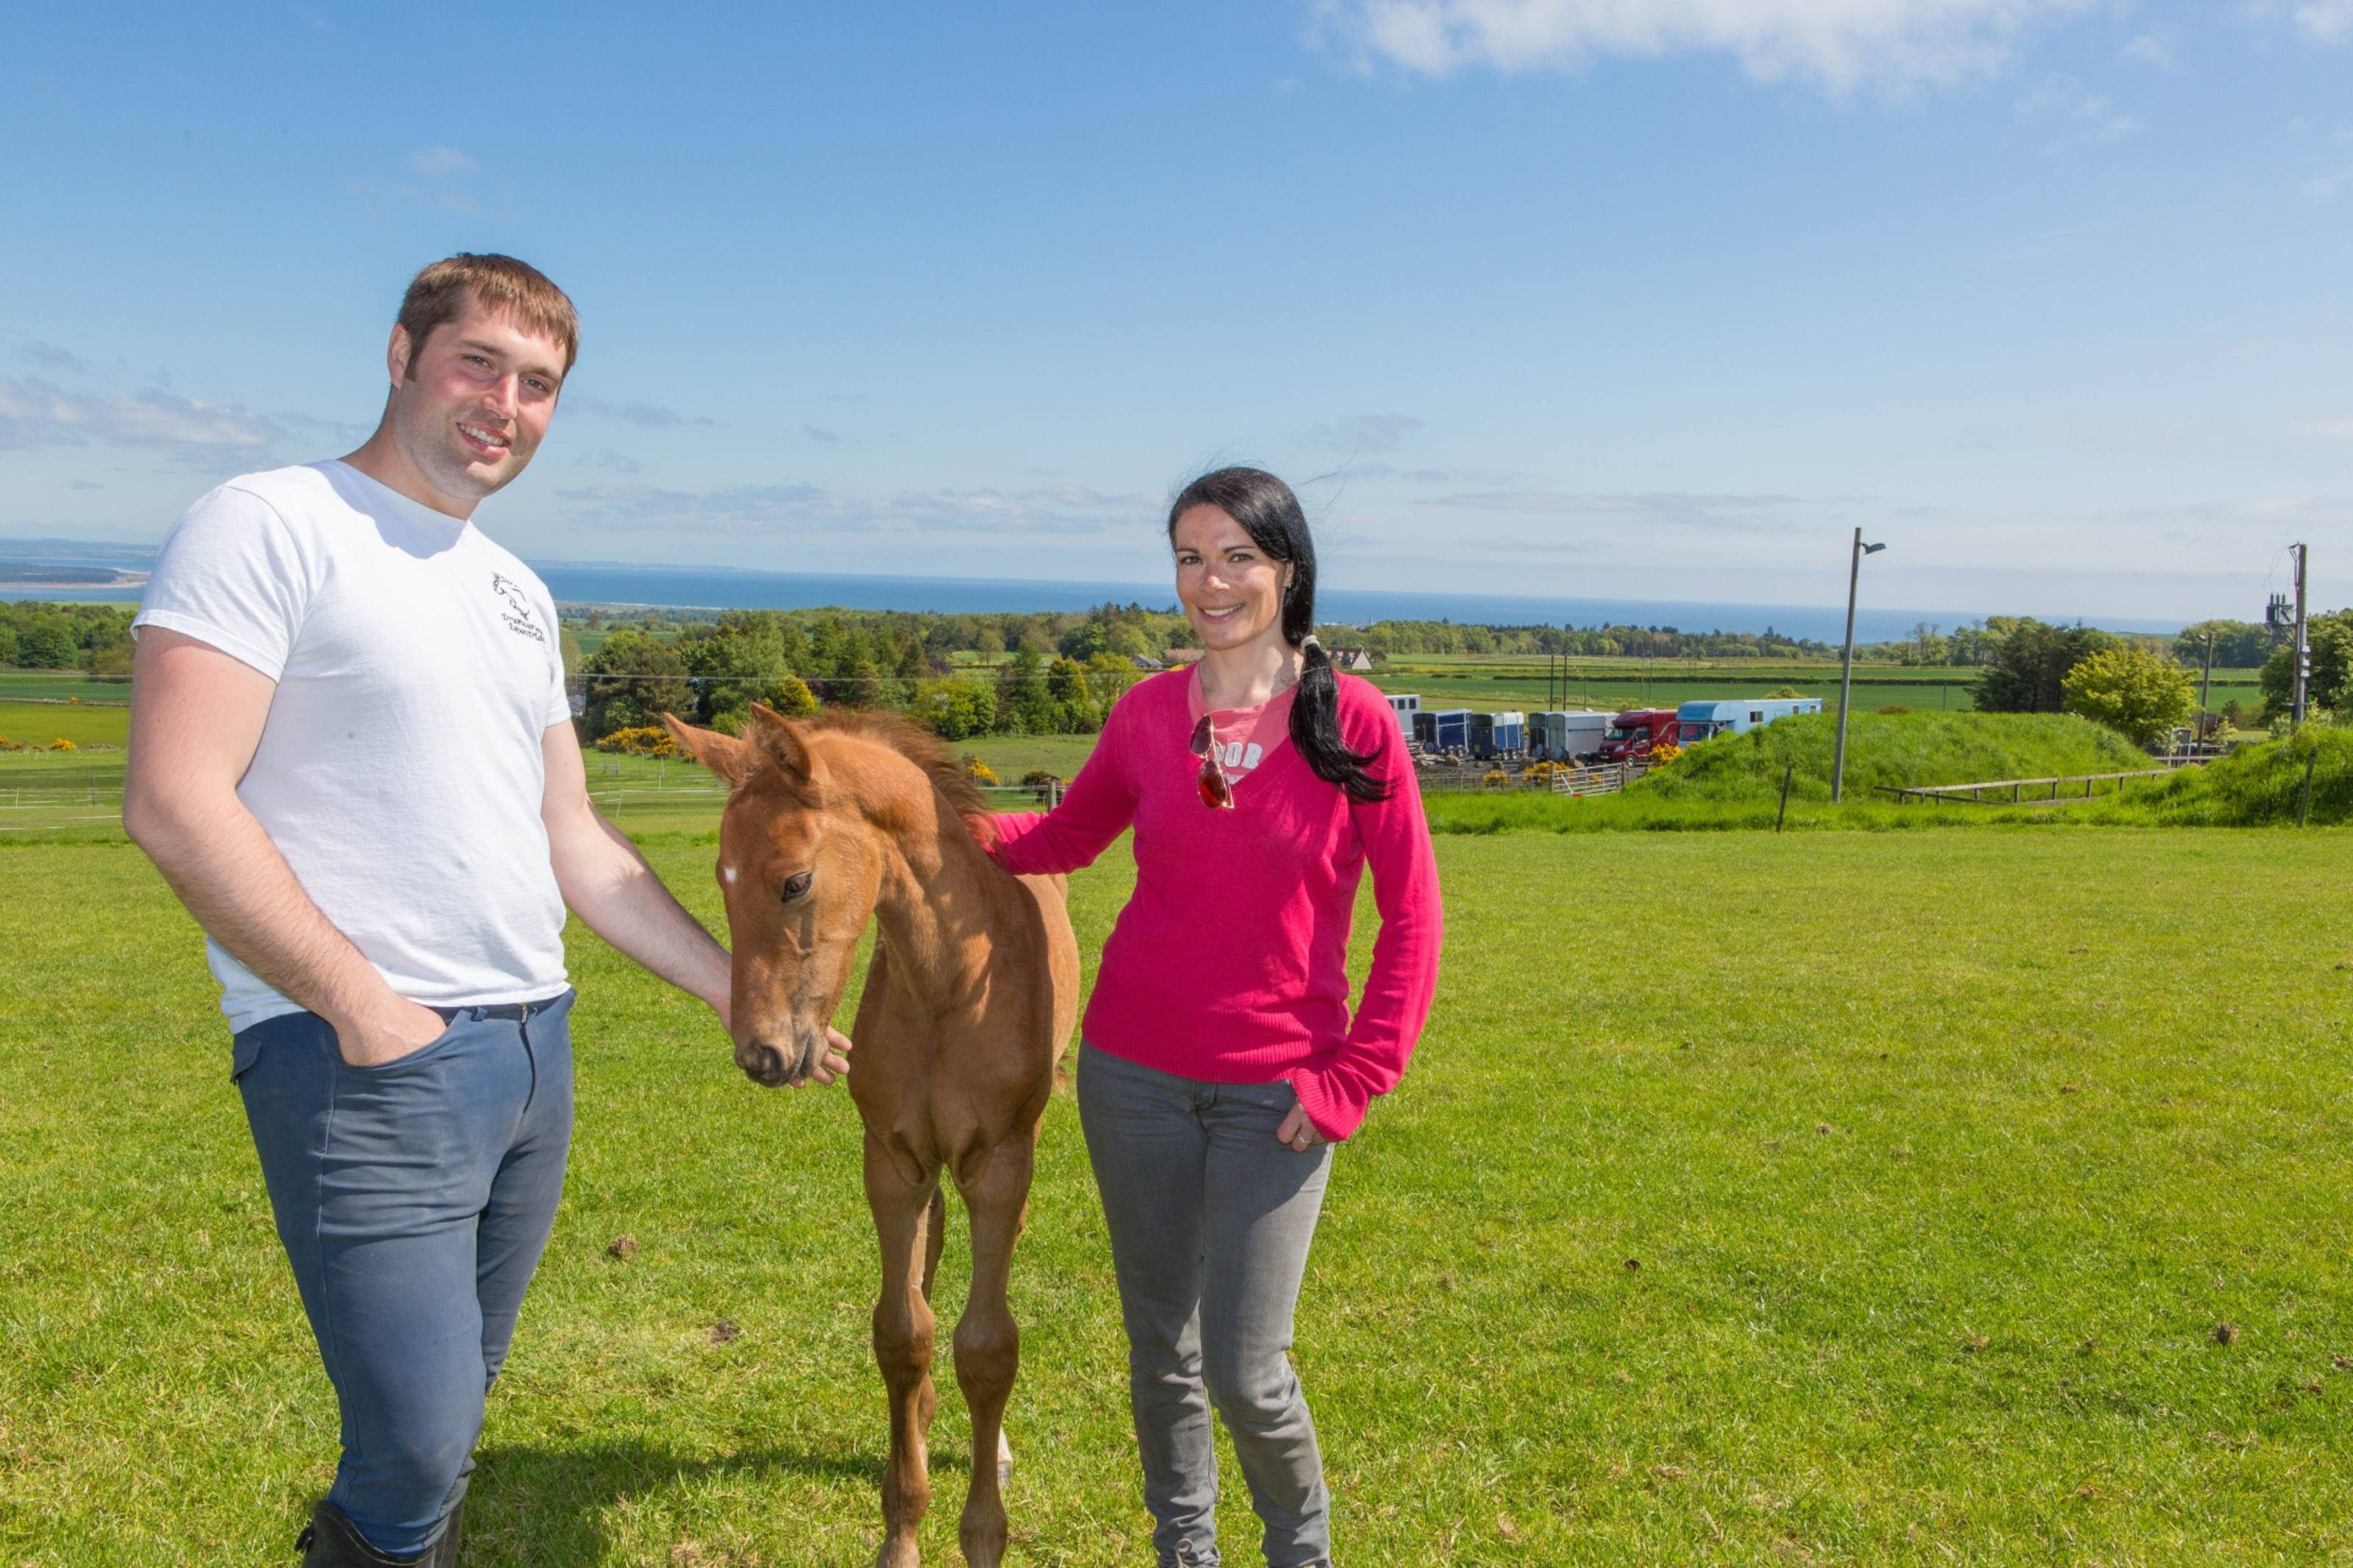 Stephen Lohoar and Gayle Ritchie with foal Lanson at Drumcarrow Equestrian.